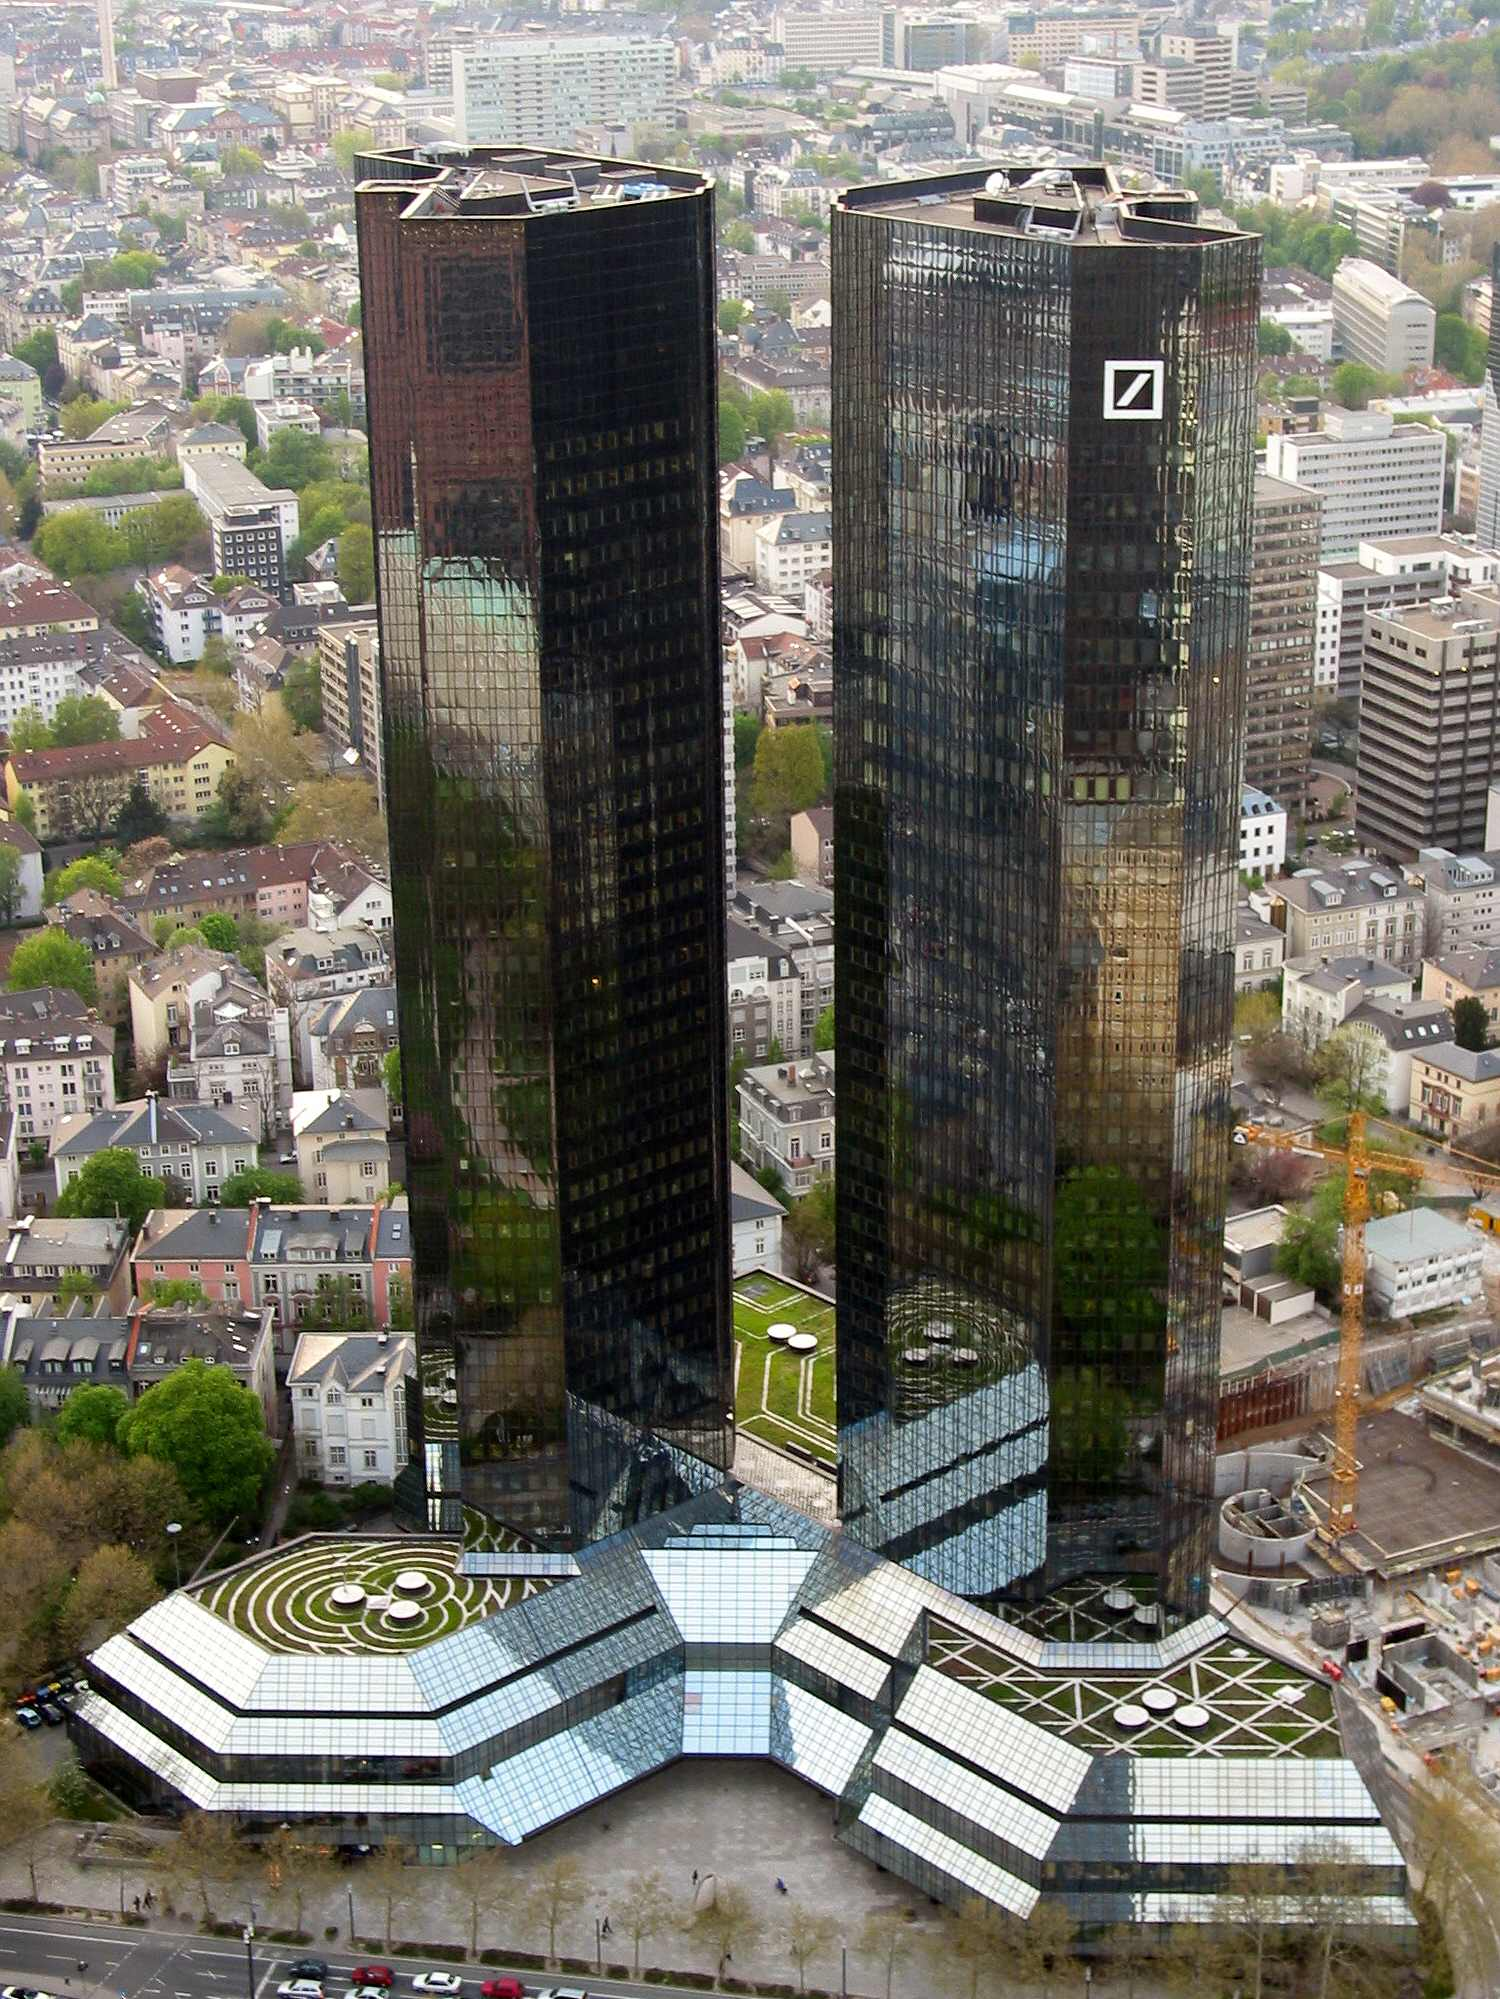 http://upload.wikimedia.org/wikipedia/commons/a/ac/Frankfurt_Deutsche_Bank_Skyscryper.jpg